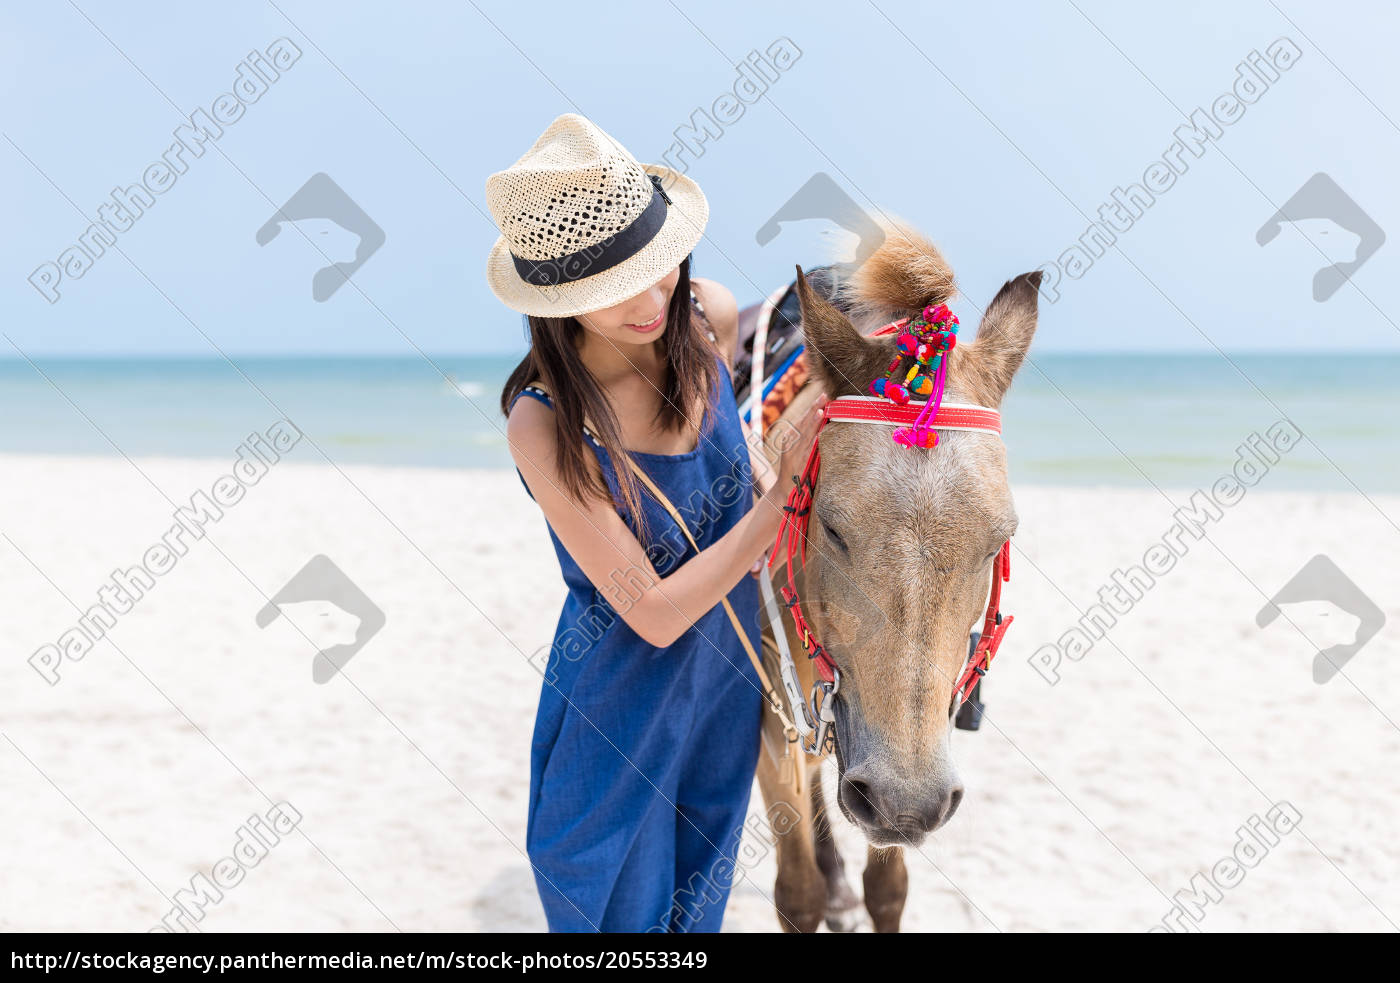 woman, play, with, horse, in, sand - 20553349